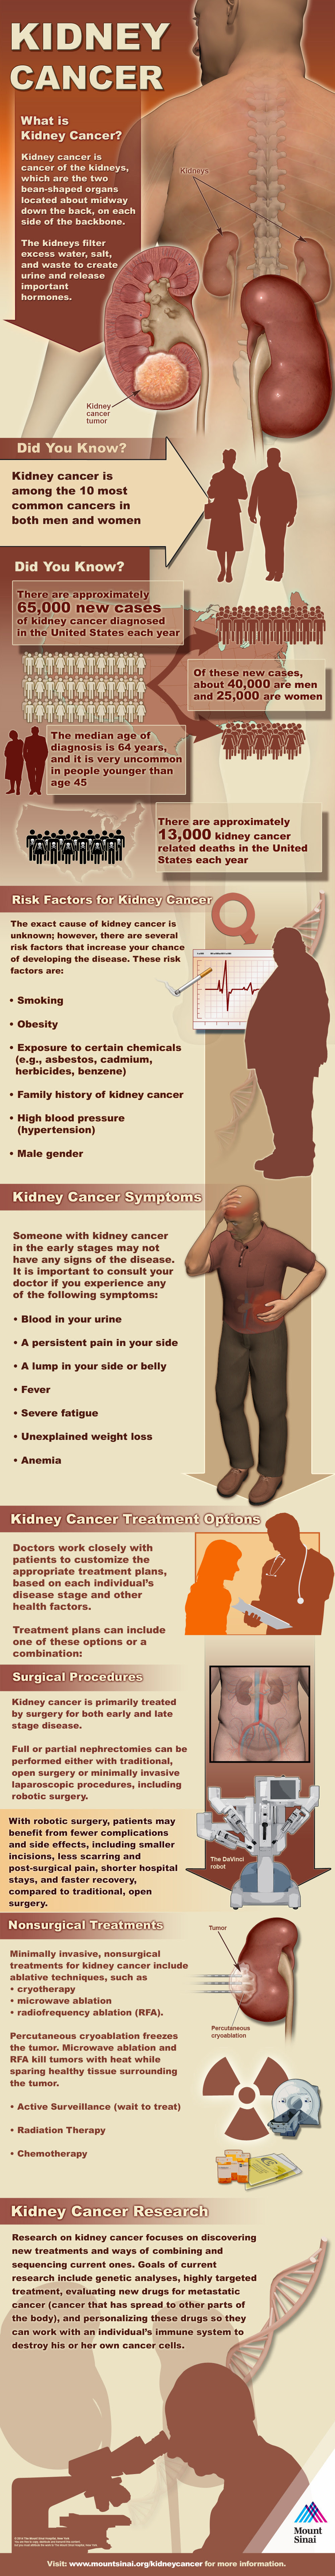 Infographic: Kidney Cancer #infographic